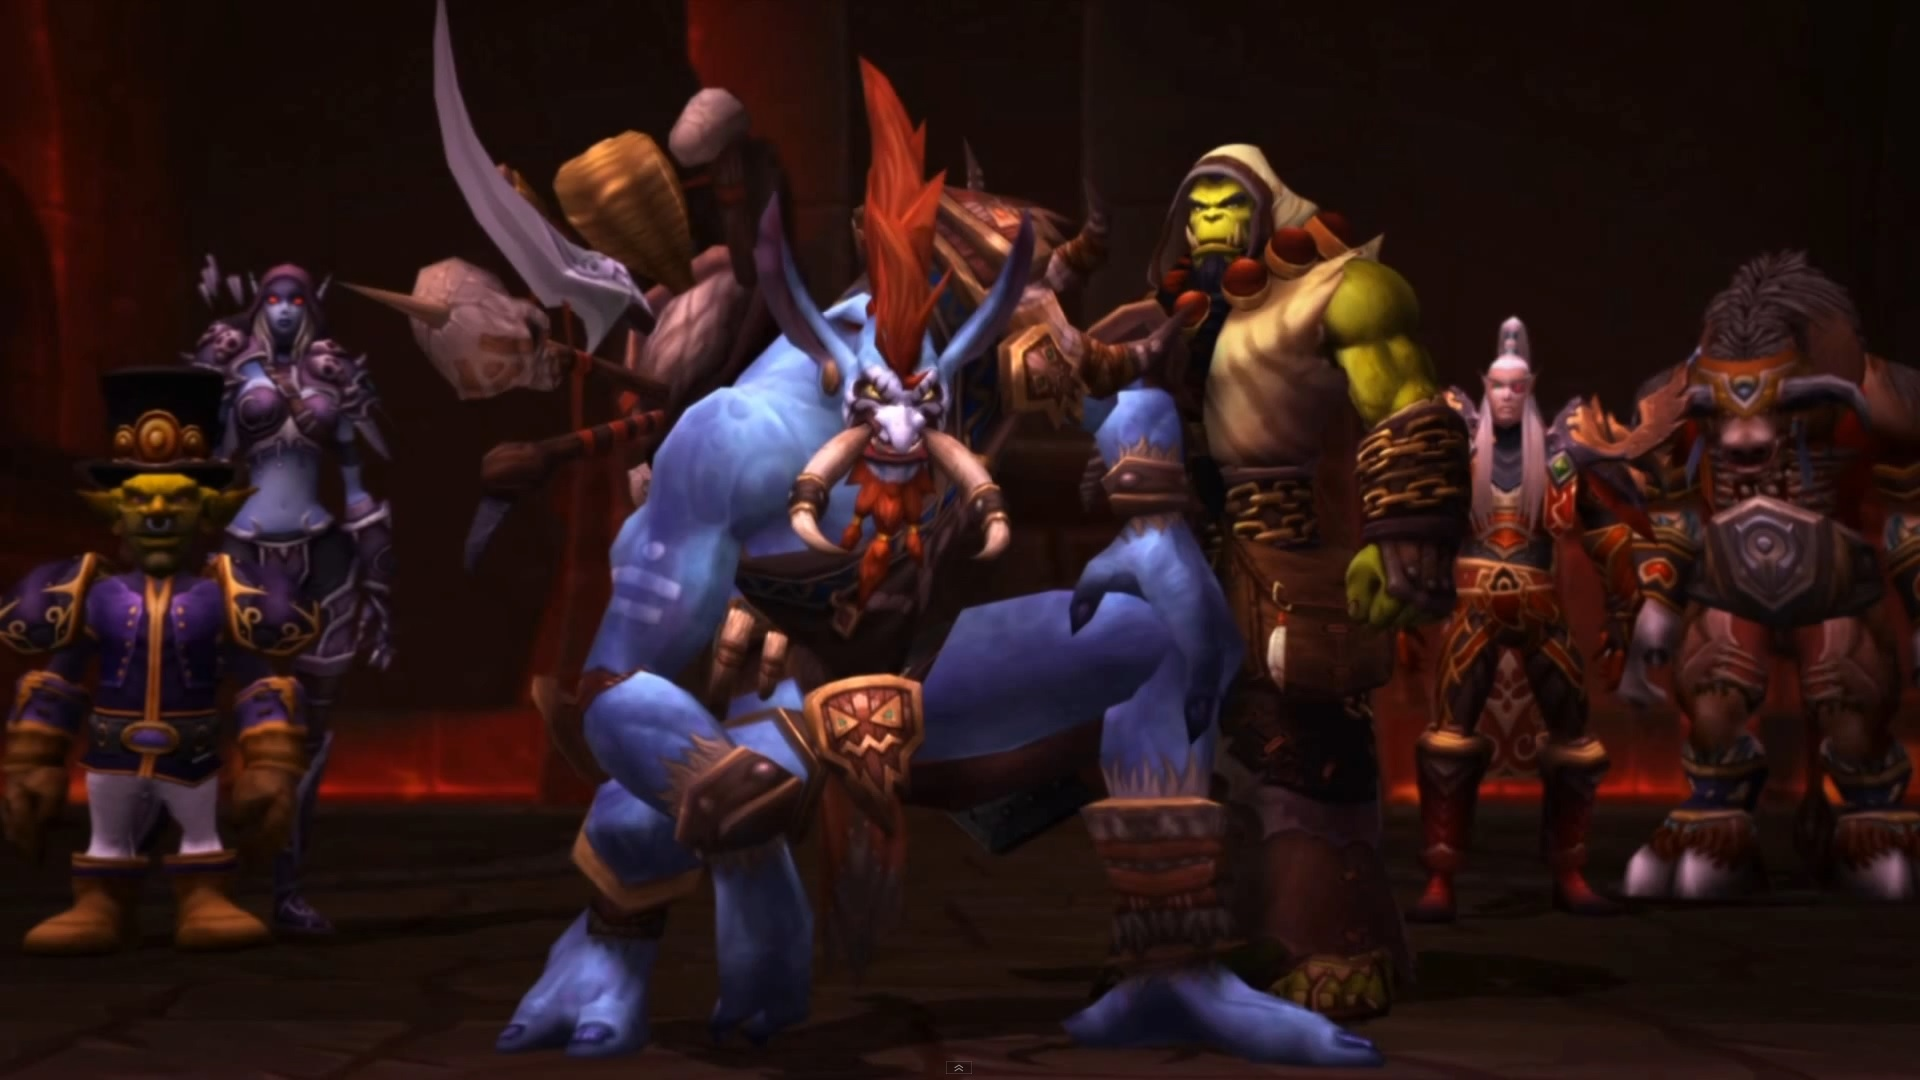 Warchief Voljin And The Horde World Of Warcraft Know Your Meme